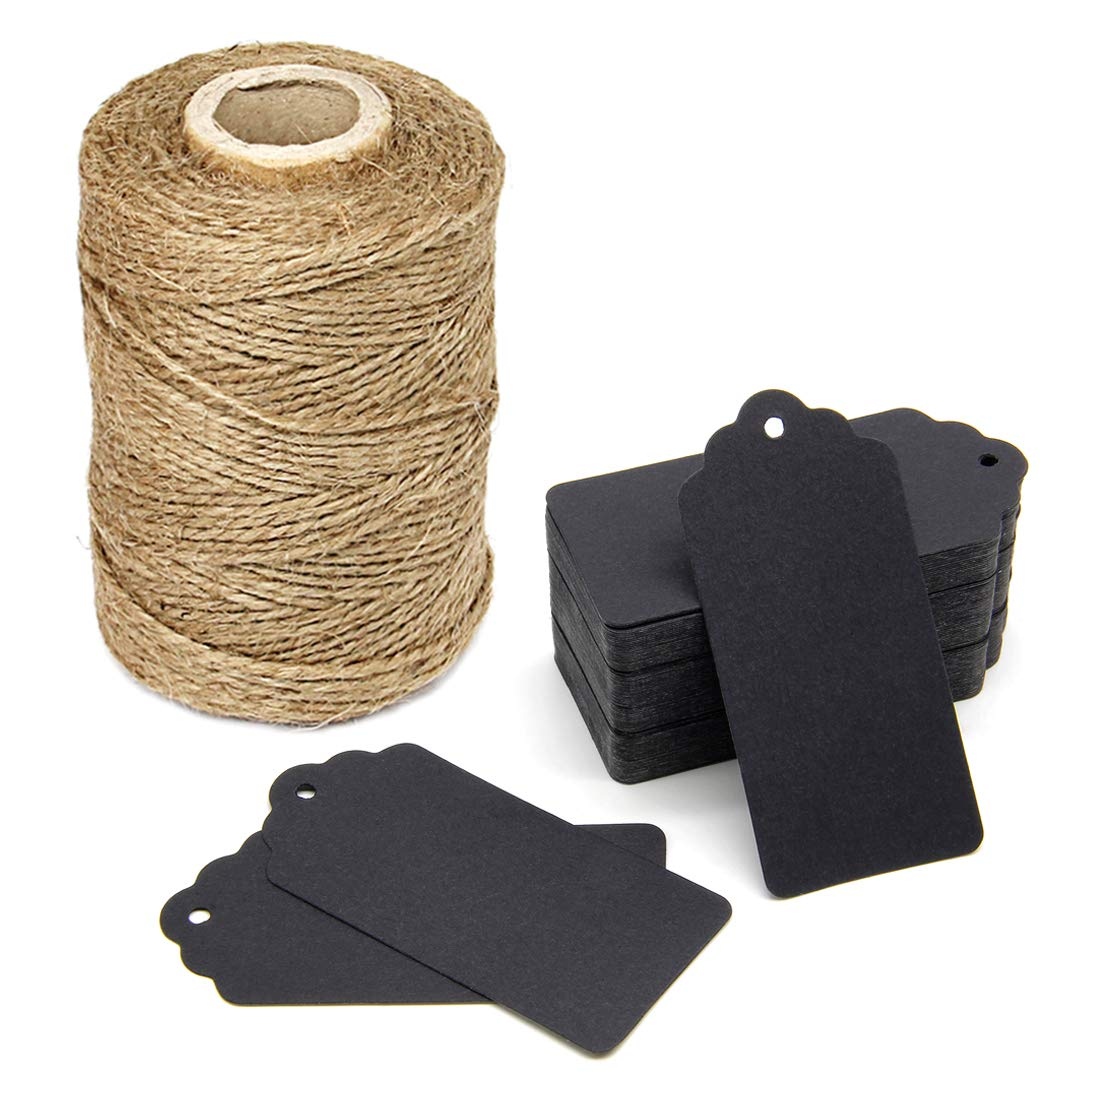 300 Feet Natural Jute Twine and 100PCS White Gift Tags & Price Tags Lables by Blisstime